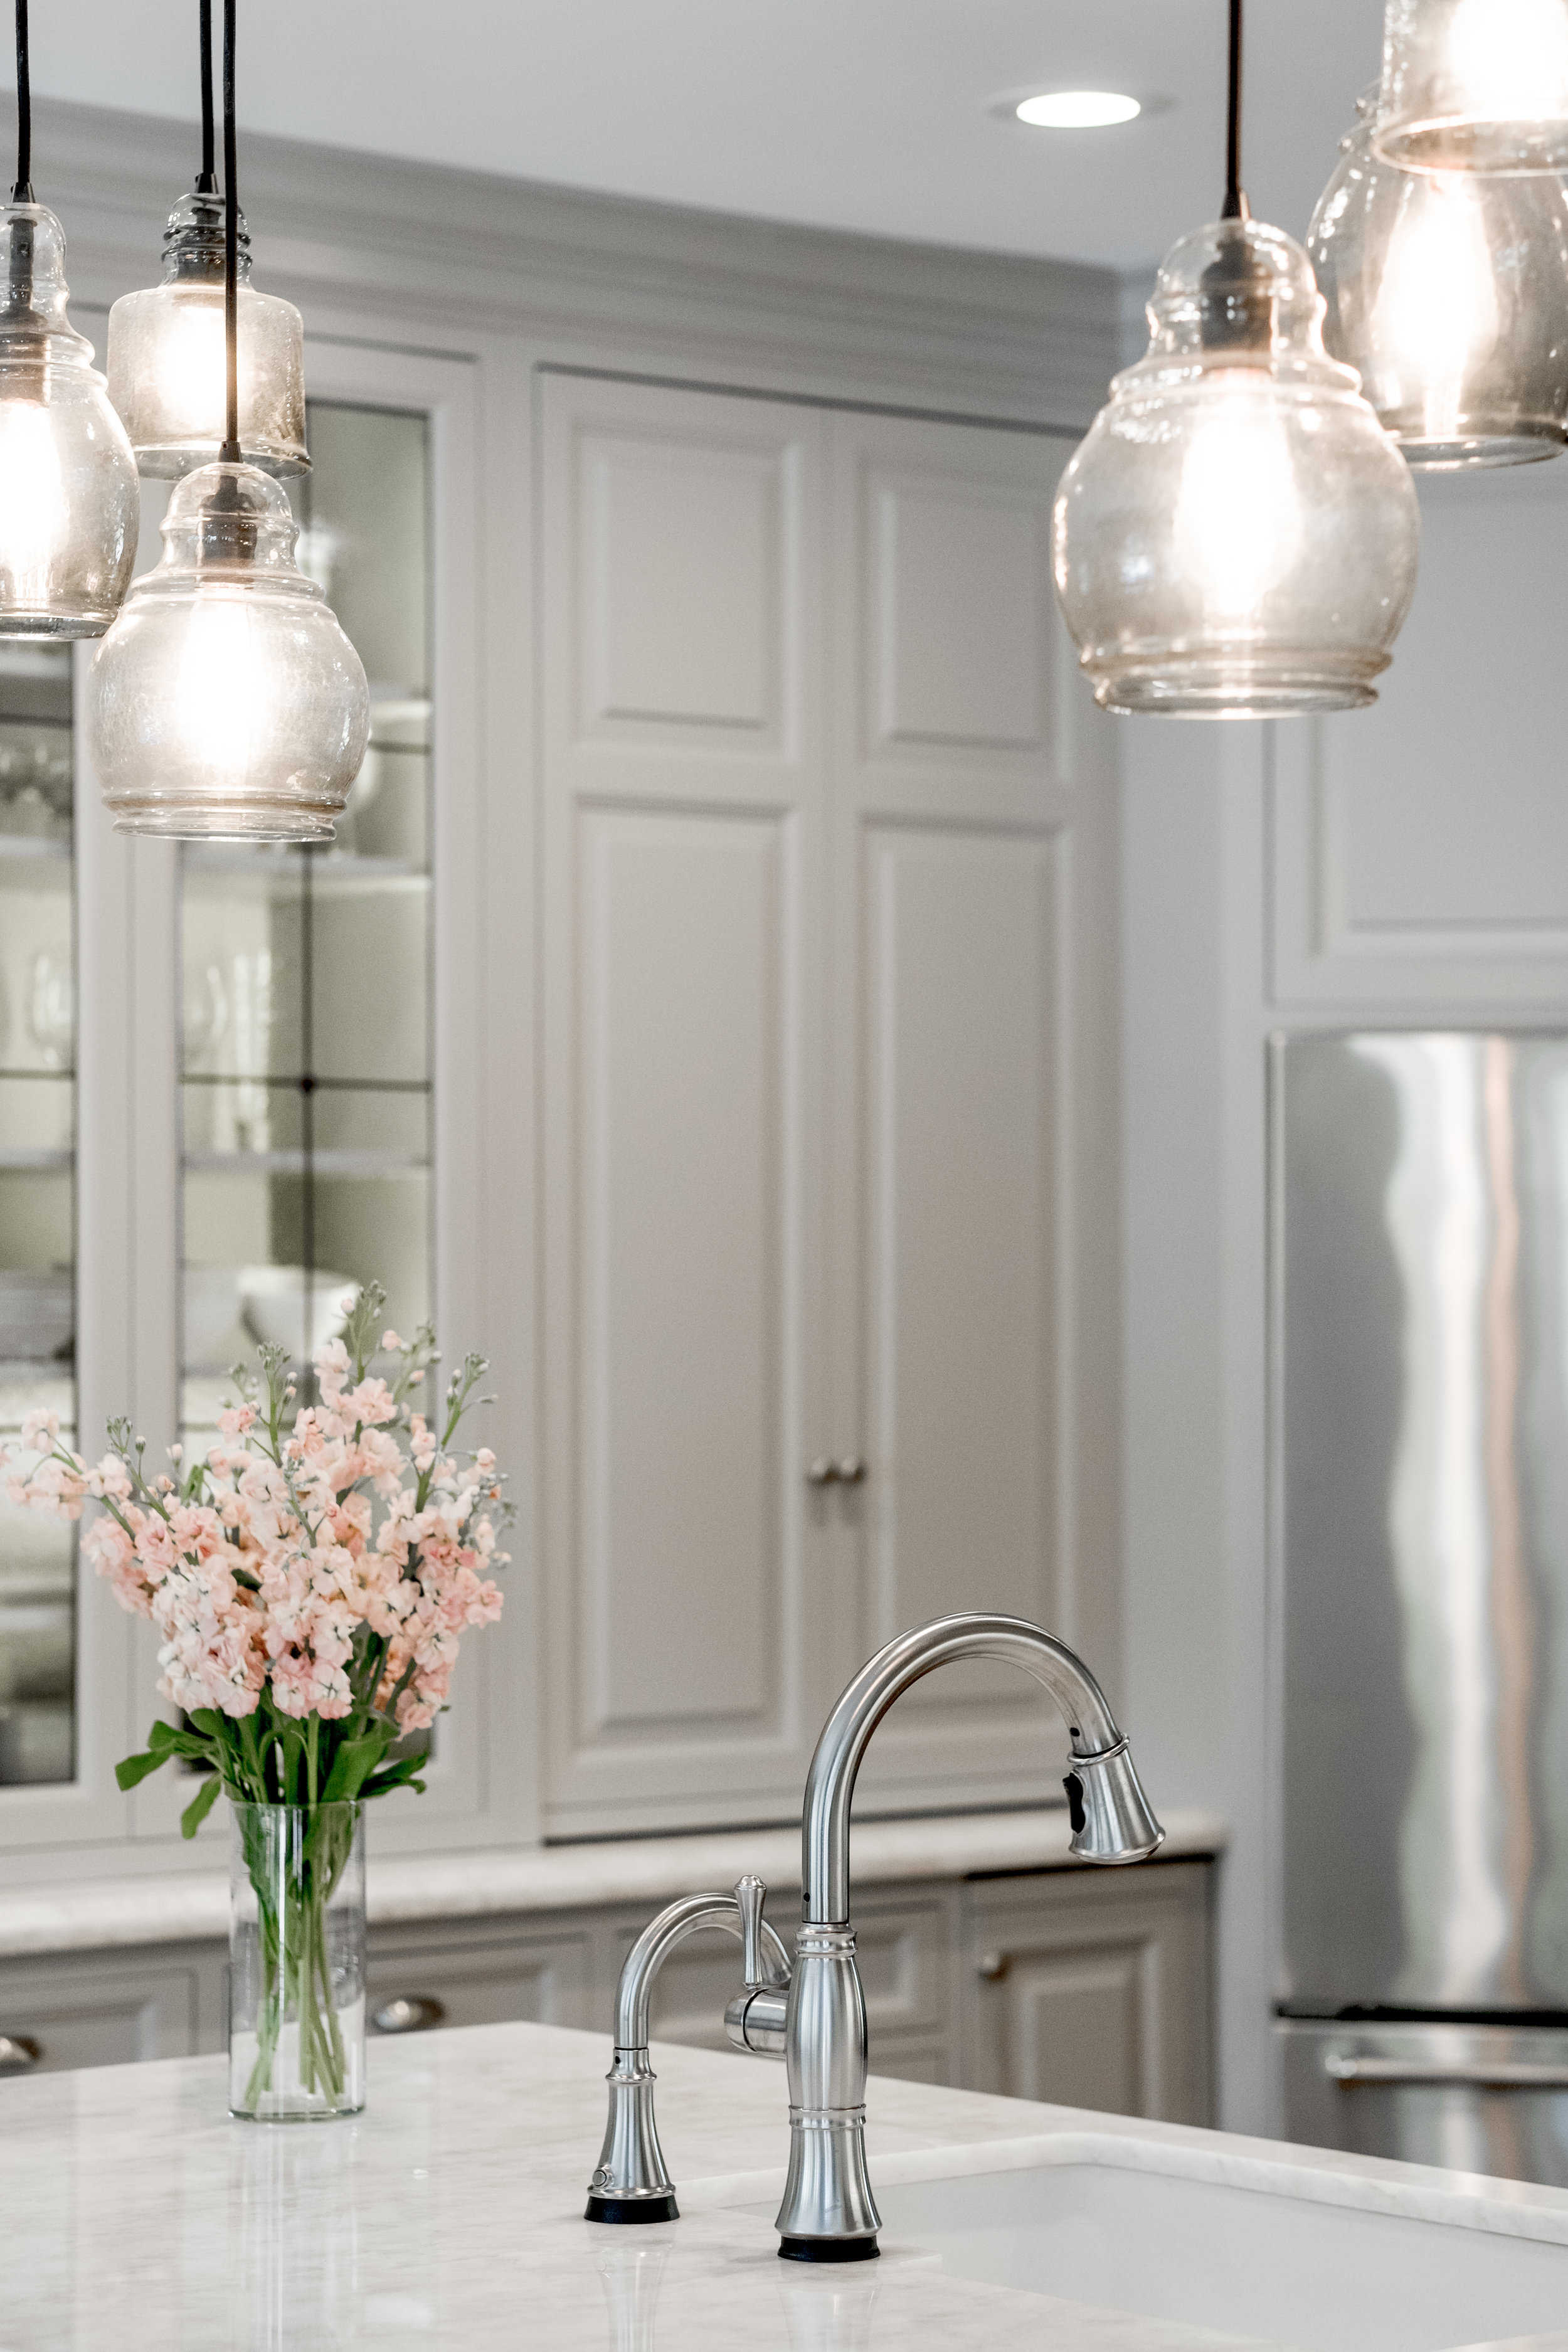 Beige kitchen cabinets with chrome accents